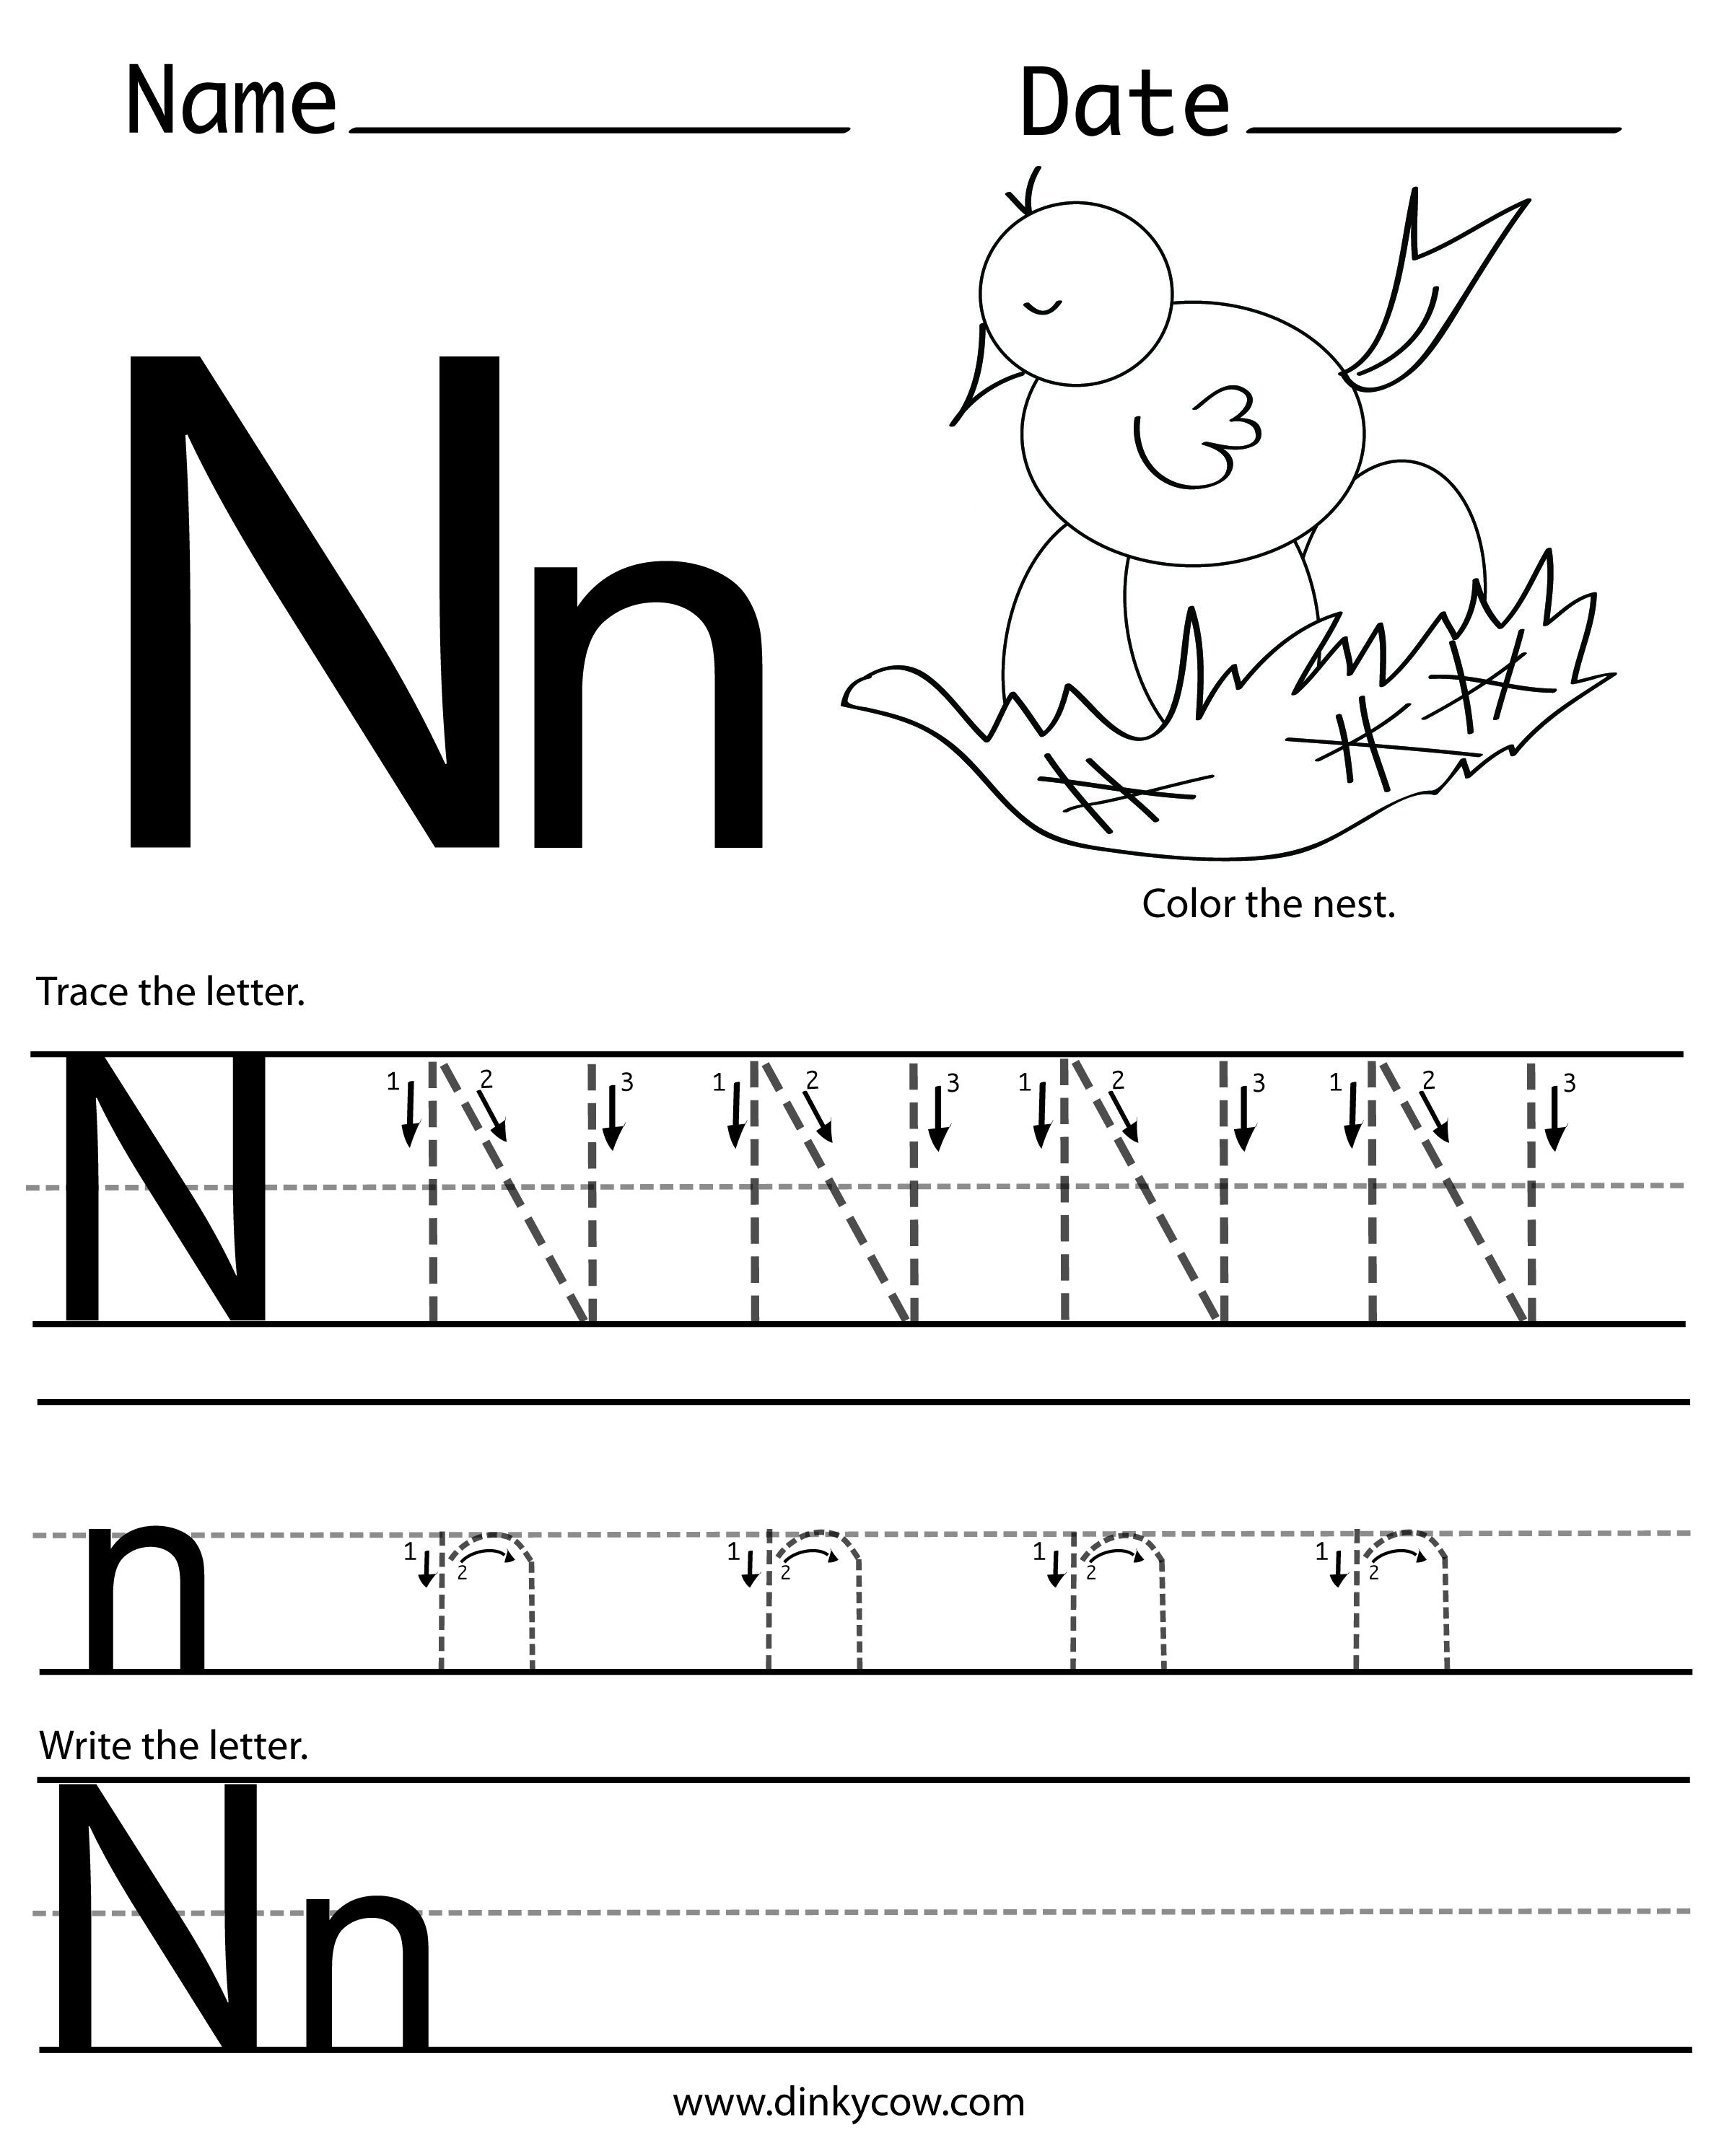 N Free Handwriting Worksheet Print Jpg 2 400 2 988 Pixels Letter Worksheets For Preschool Letter N Worksheet Kindergarten Worksheets Printable